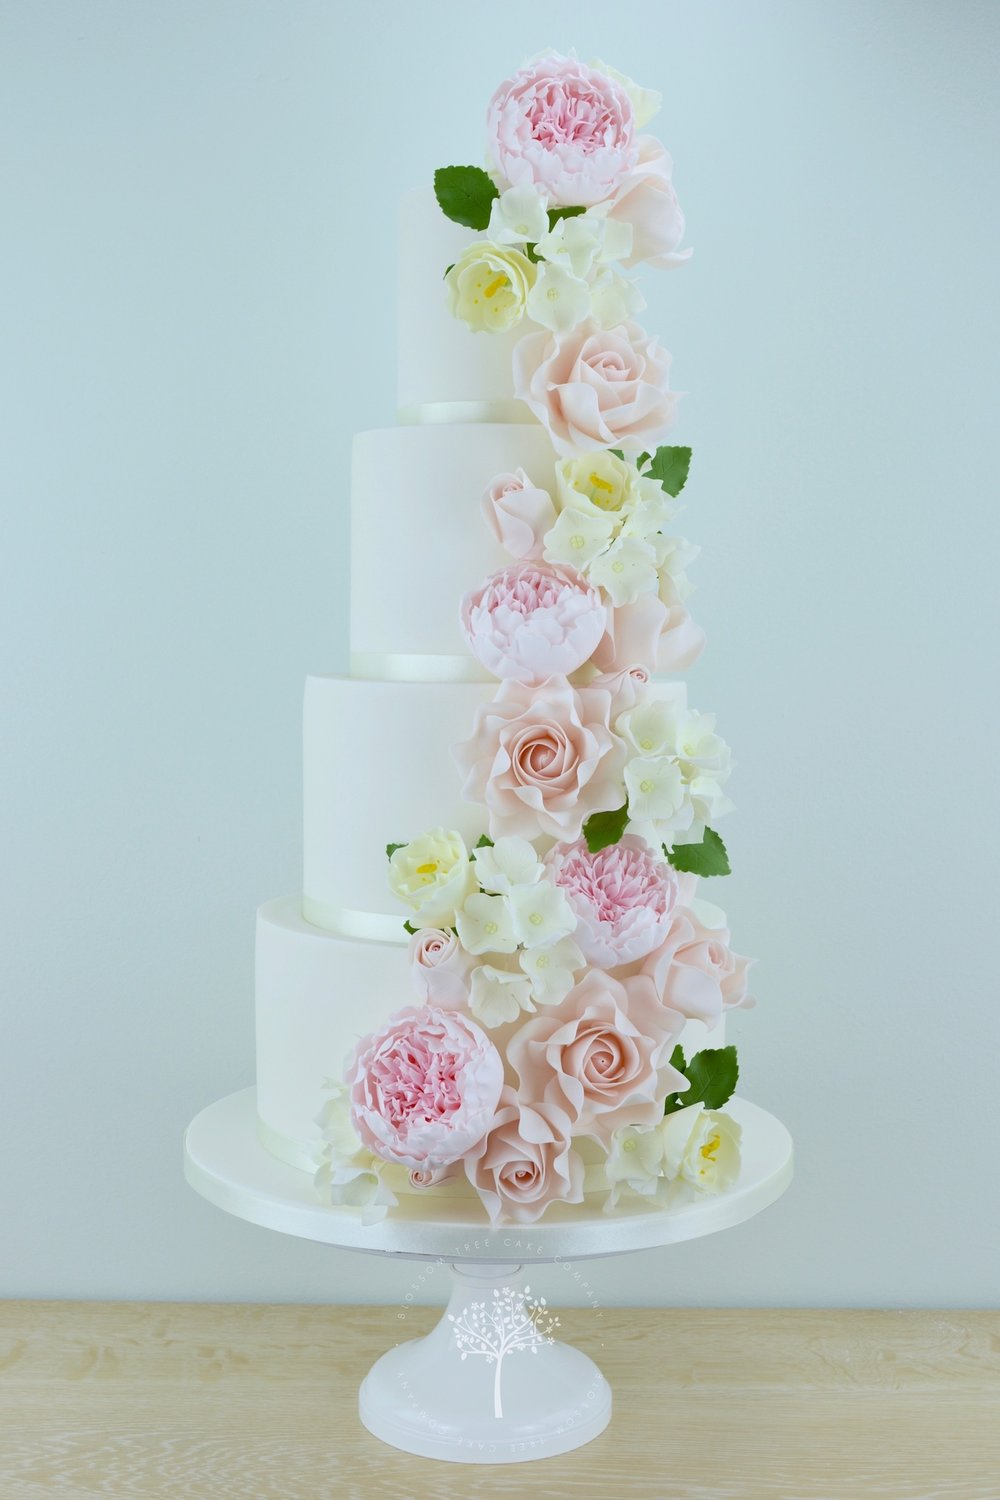 Peony, Rose & Lisianthus Cascade wedding cake by Blossom Tree Cake Company Harrogate North Yorkshire.jpg